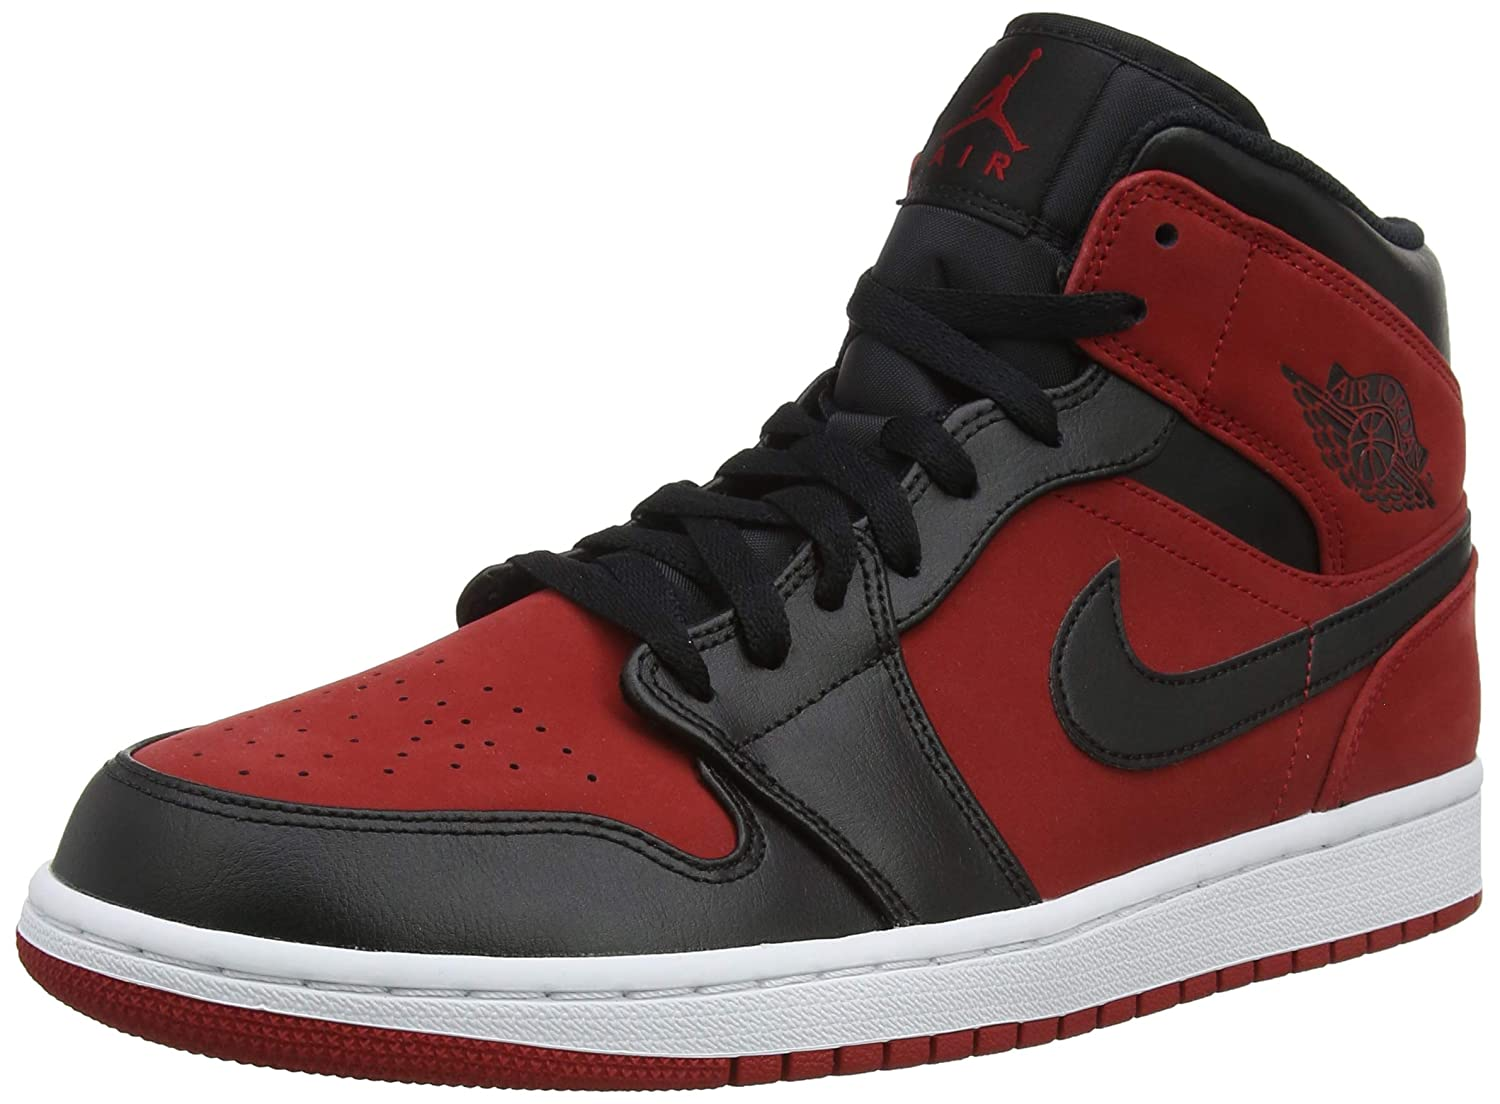 3701ec3ee7 Jordan Men's Air Retro 1 Basketball Shoe, Gym Red/Black-White (610), 11 Men  US